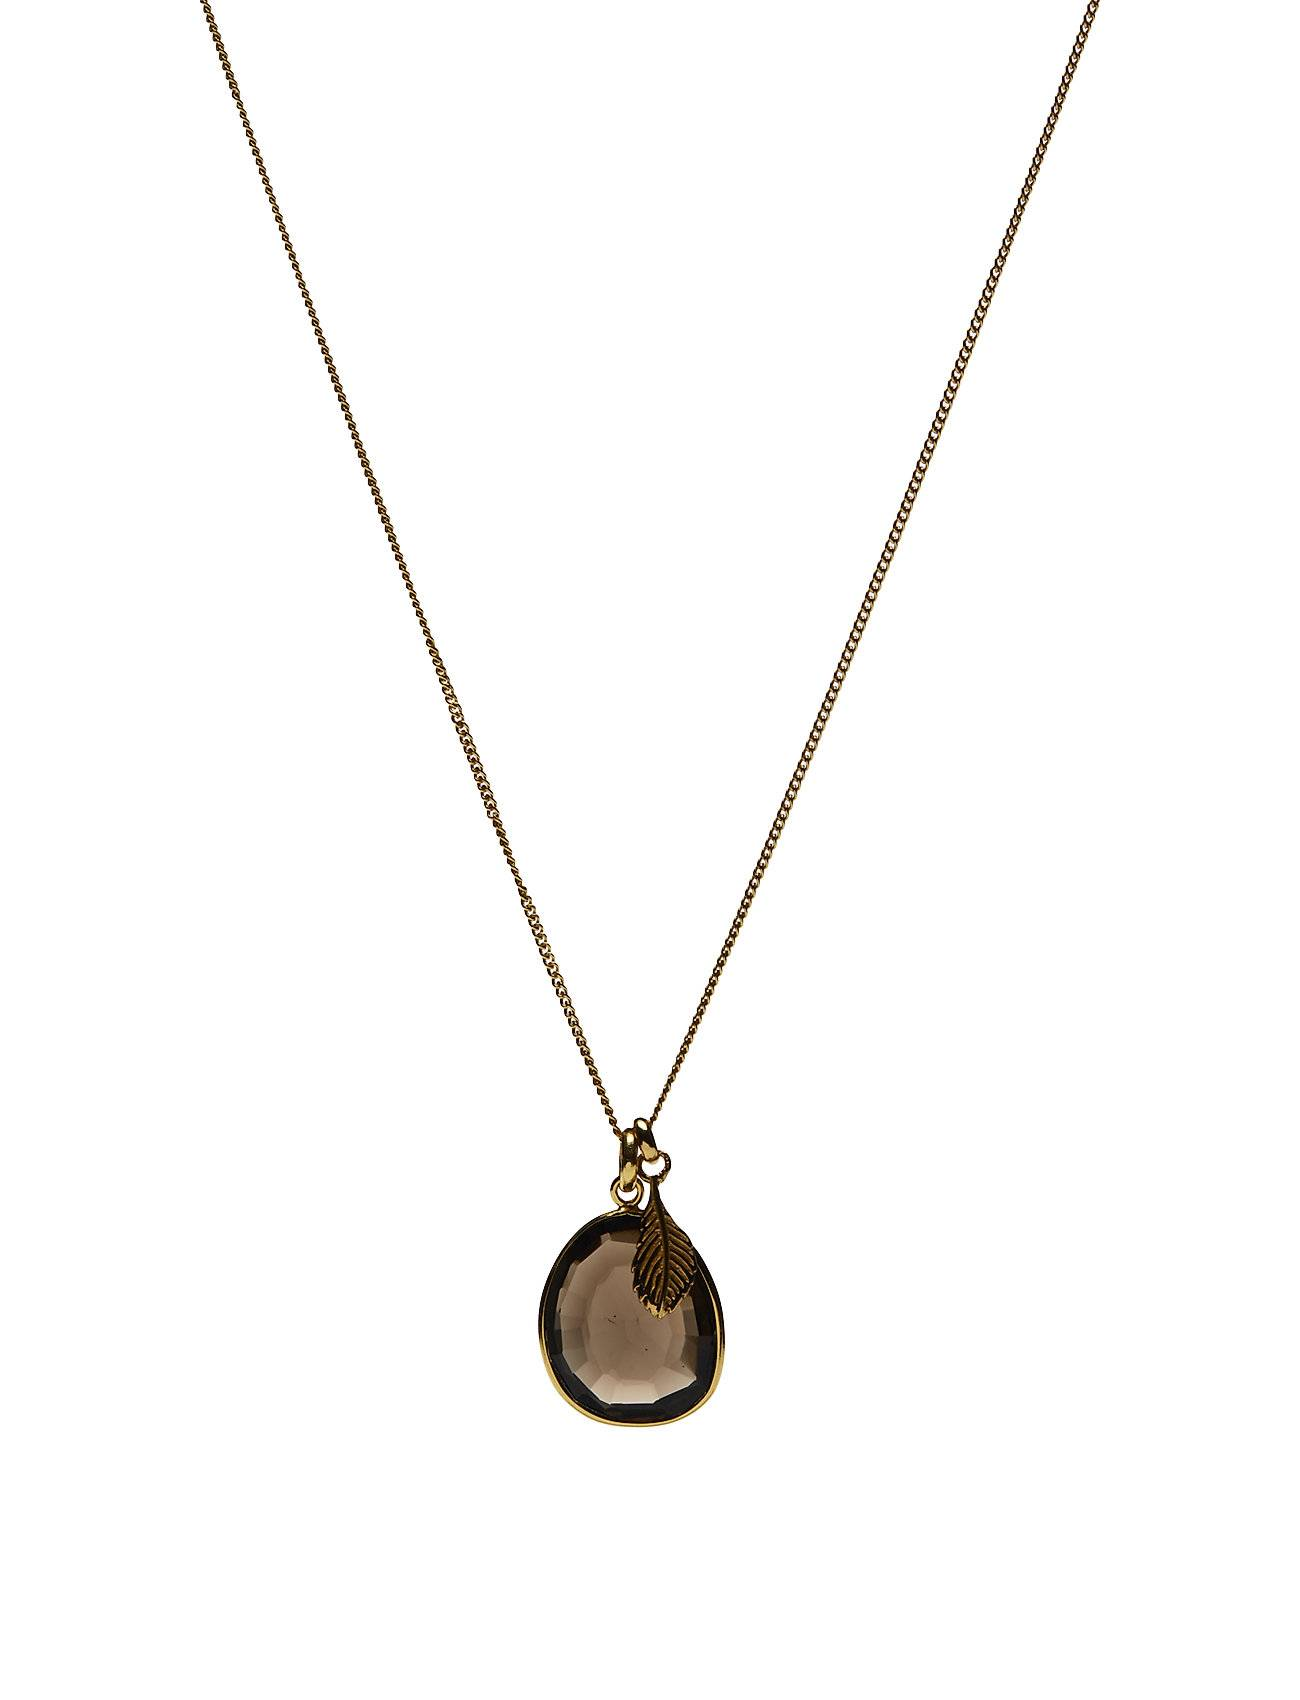 Syster P Glam Glam Necklace Accessories Jewellery Necklaces Dainty Necklaces Kulta Syster P